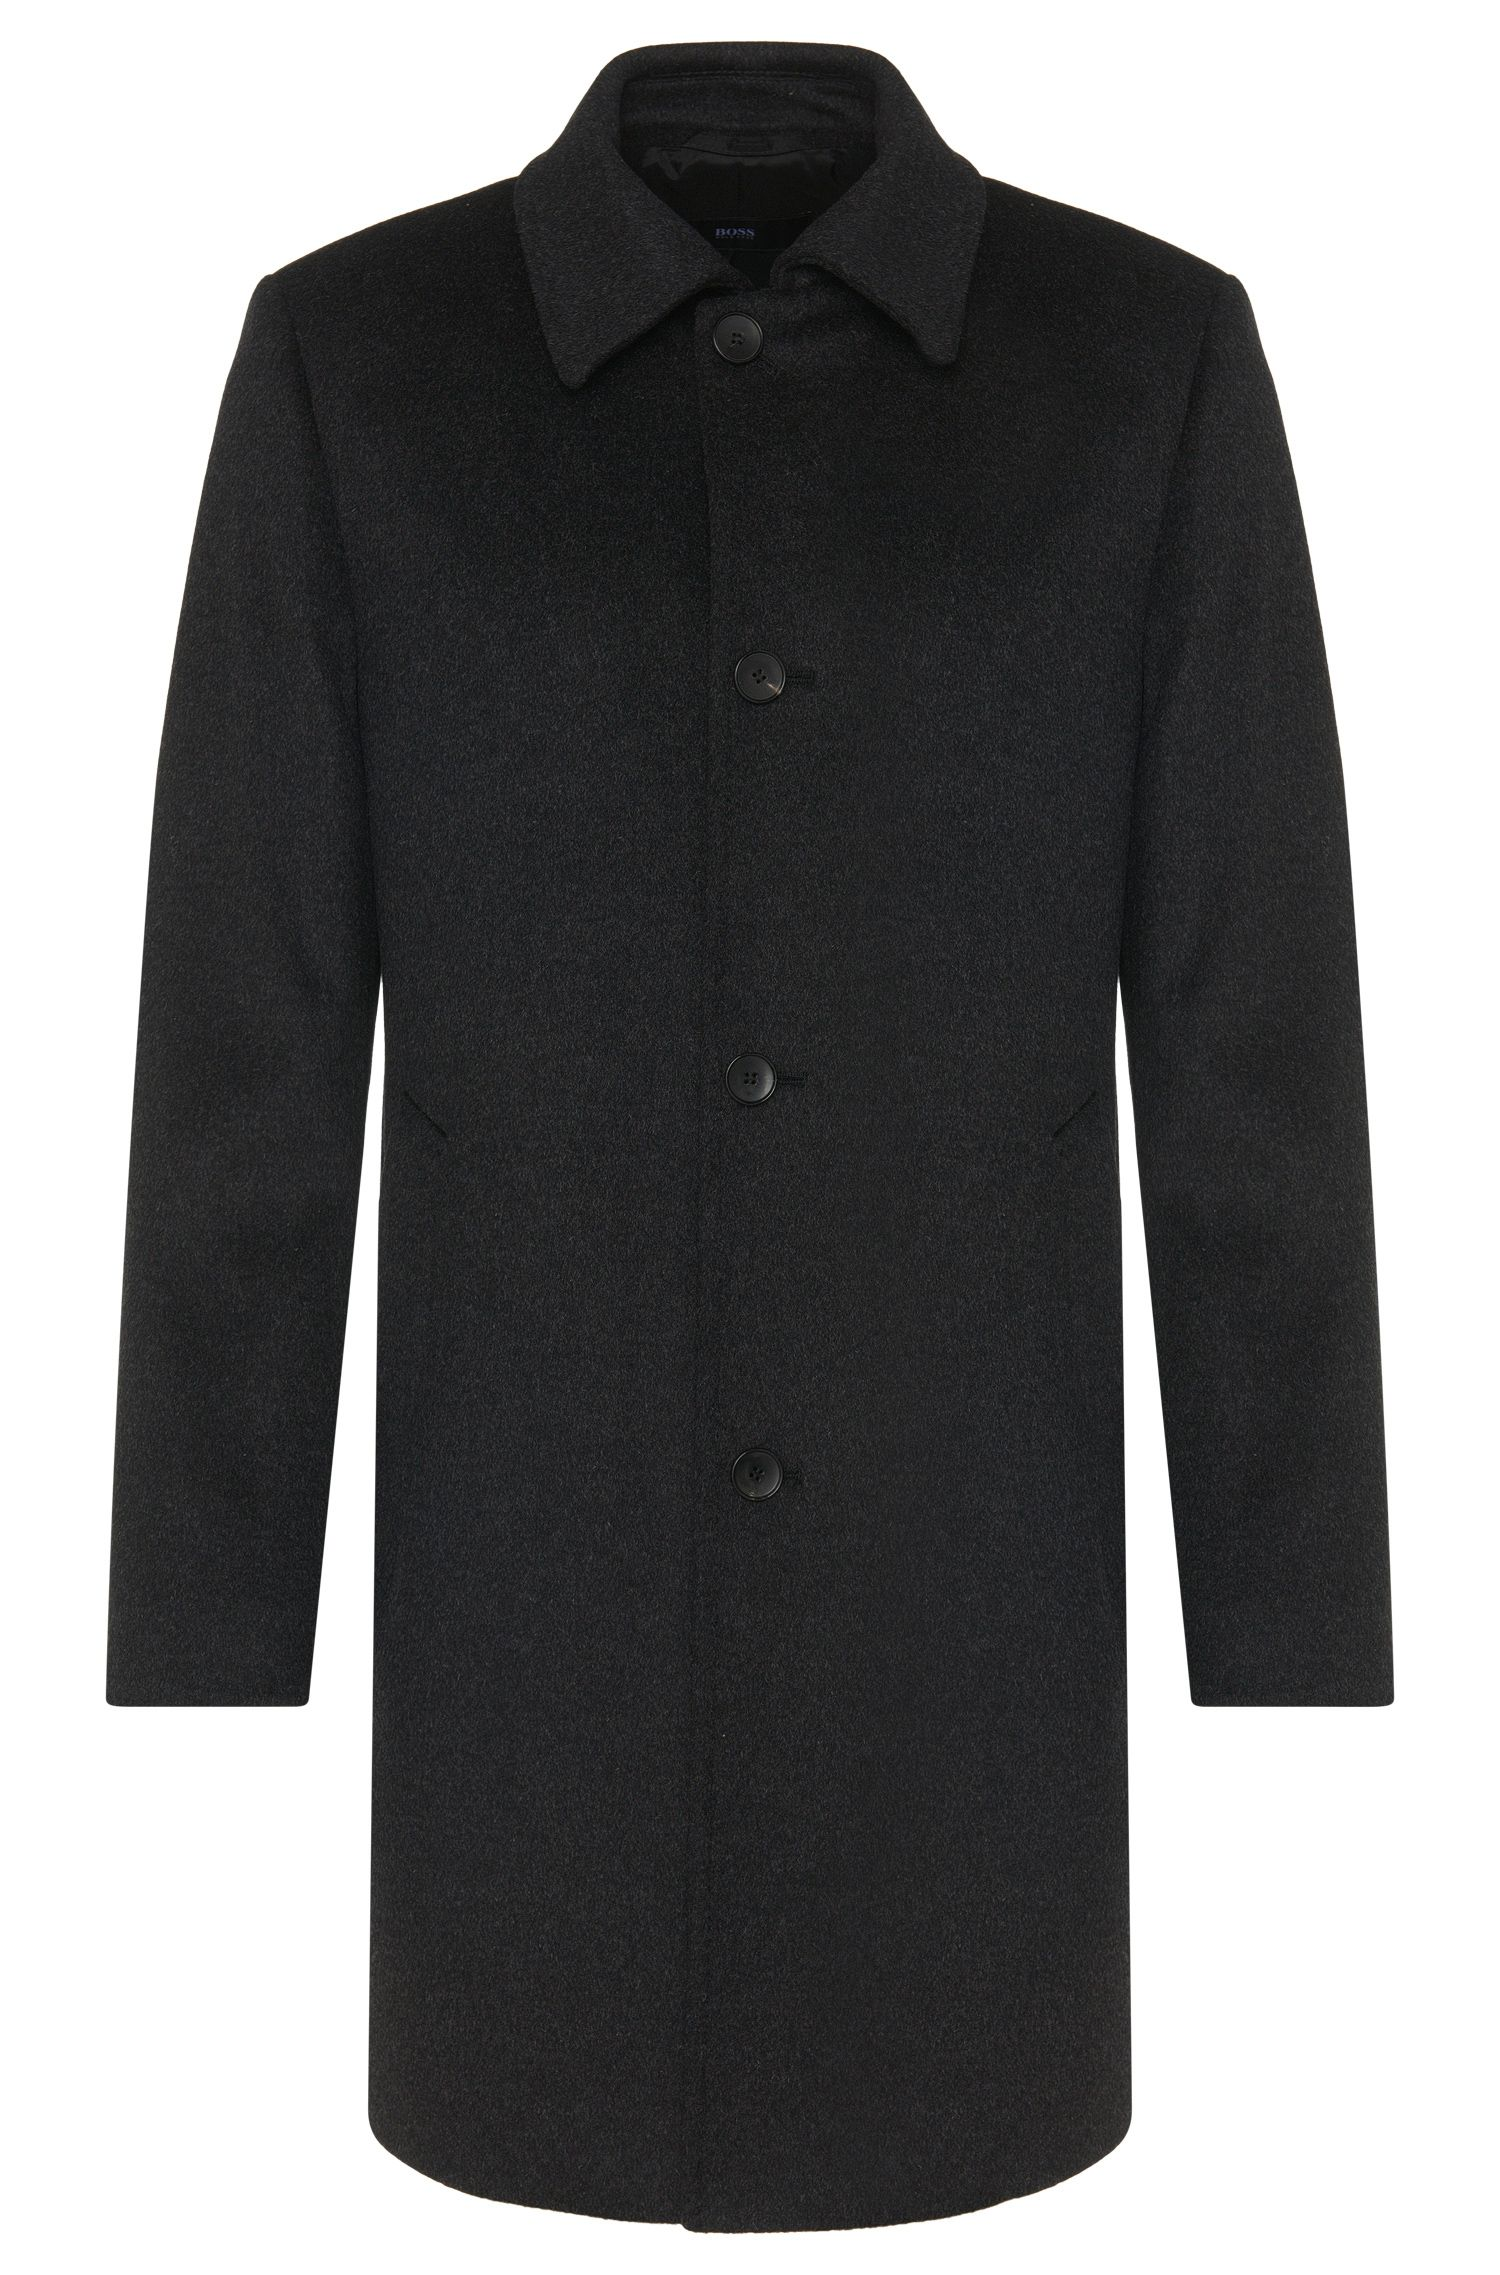 'Task' | Virgin Wool Cashmere Car Coat